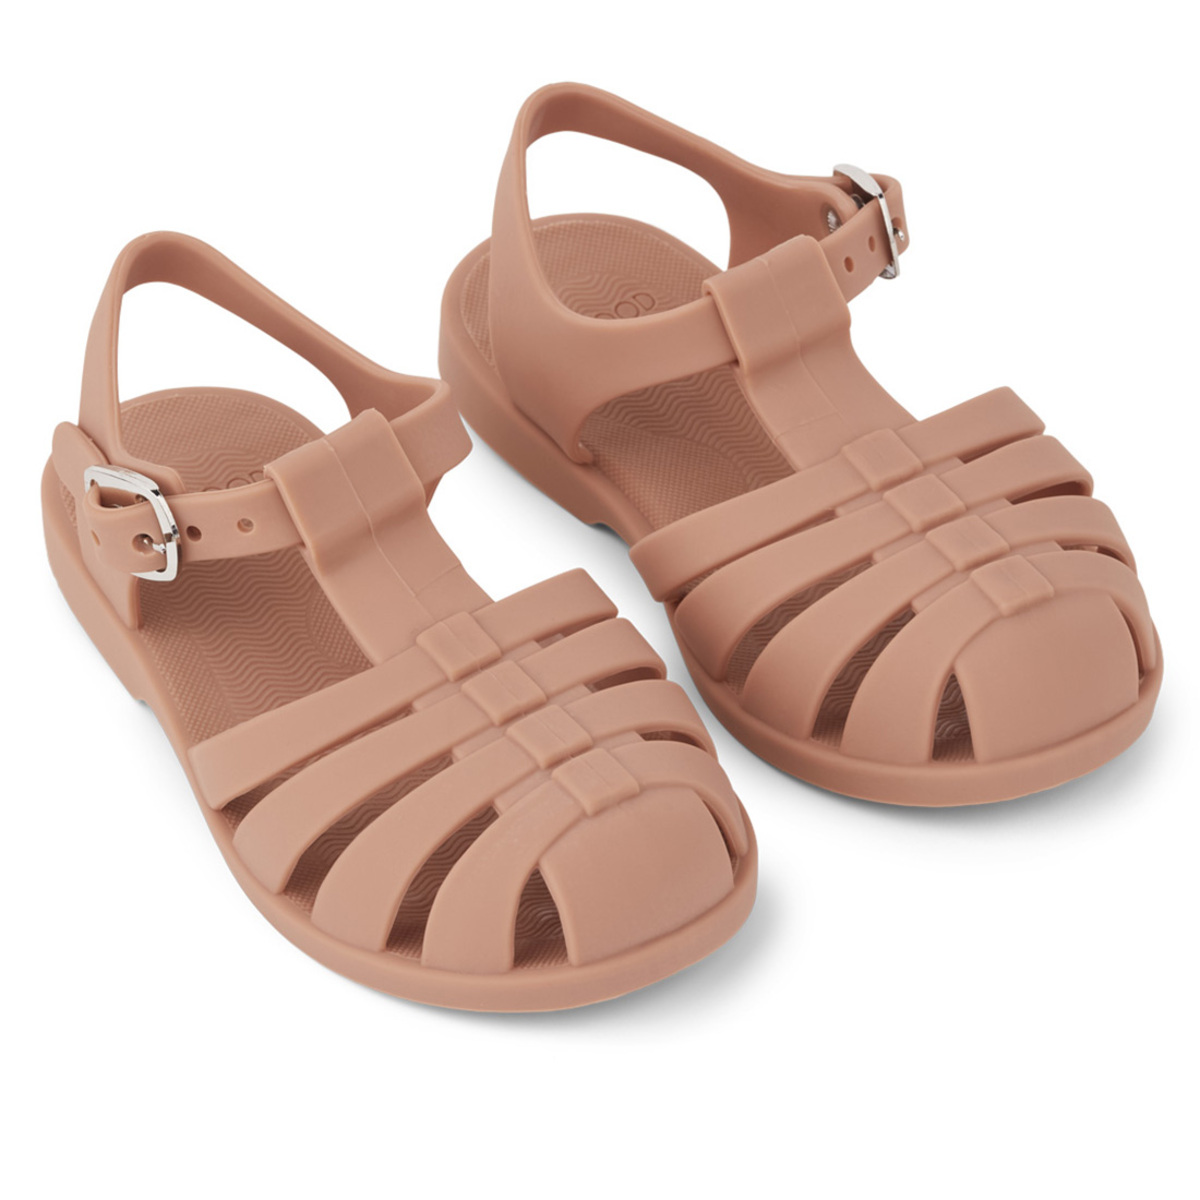 Chaussons & Chaussures Sandales Bre Tuscany Rose - 22 Sandales Bre Tuscany Rose - 22